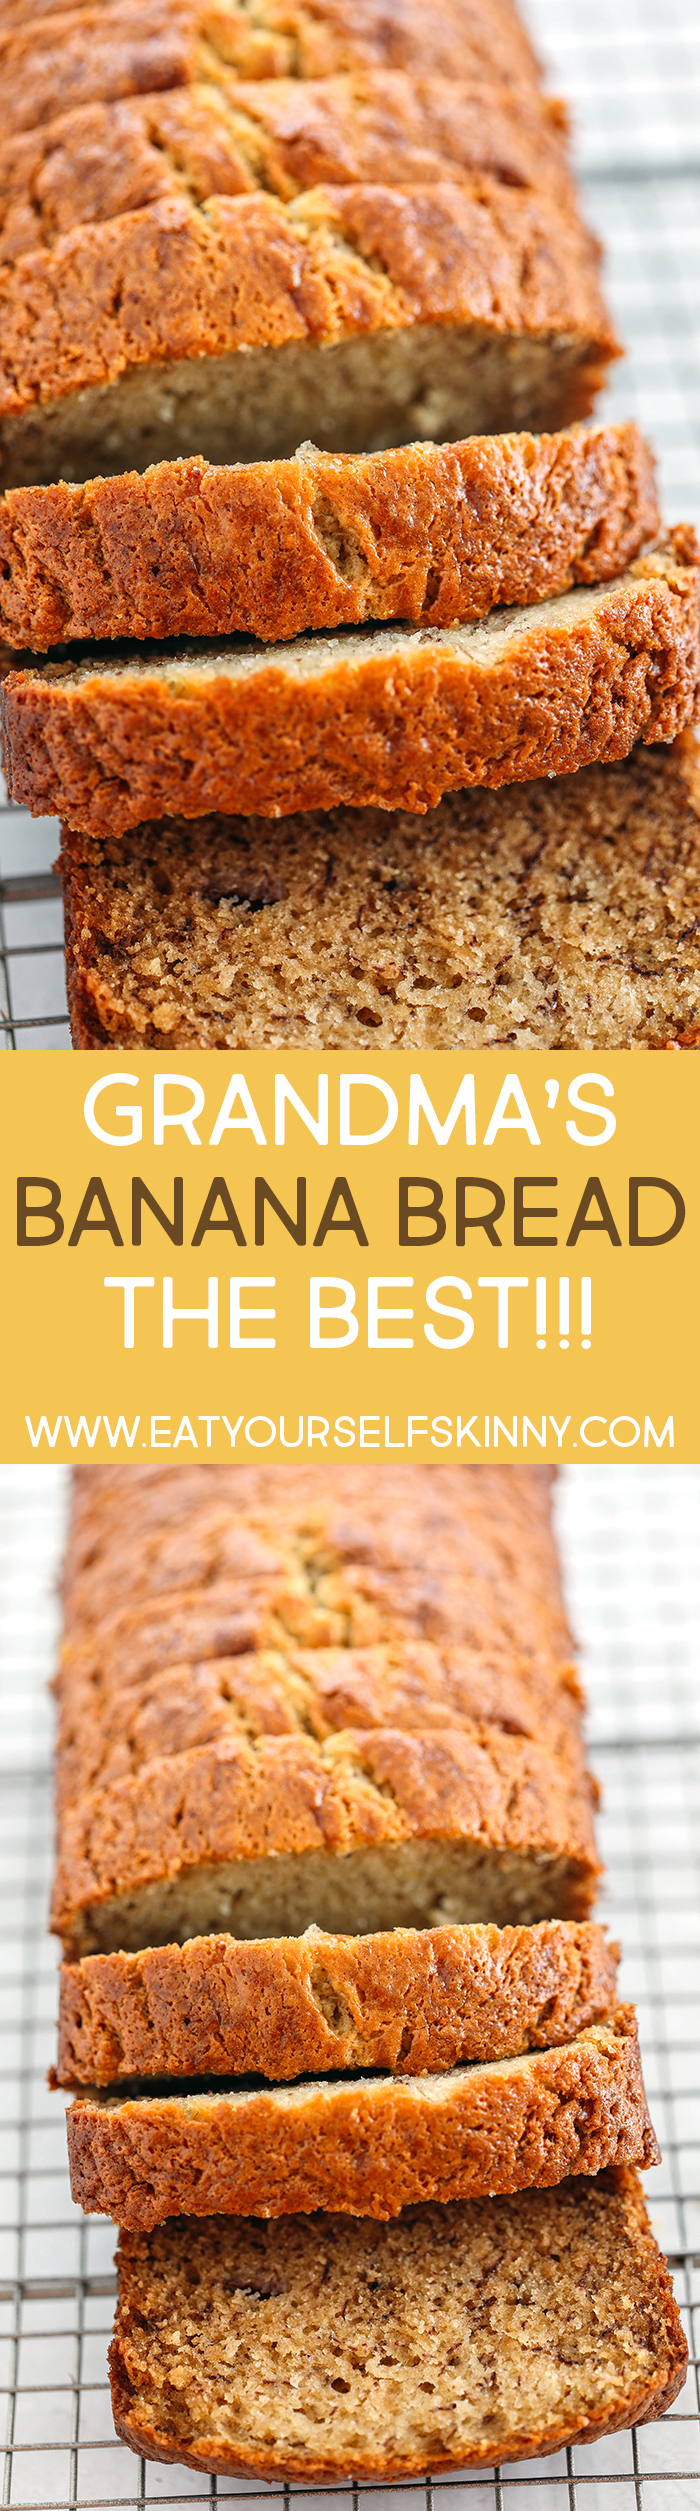 You will love my Grandma's tried and true banana bread recipe that is a classic favorite!  Perfectly sweet, moist and full of delicious banana flavor!